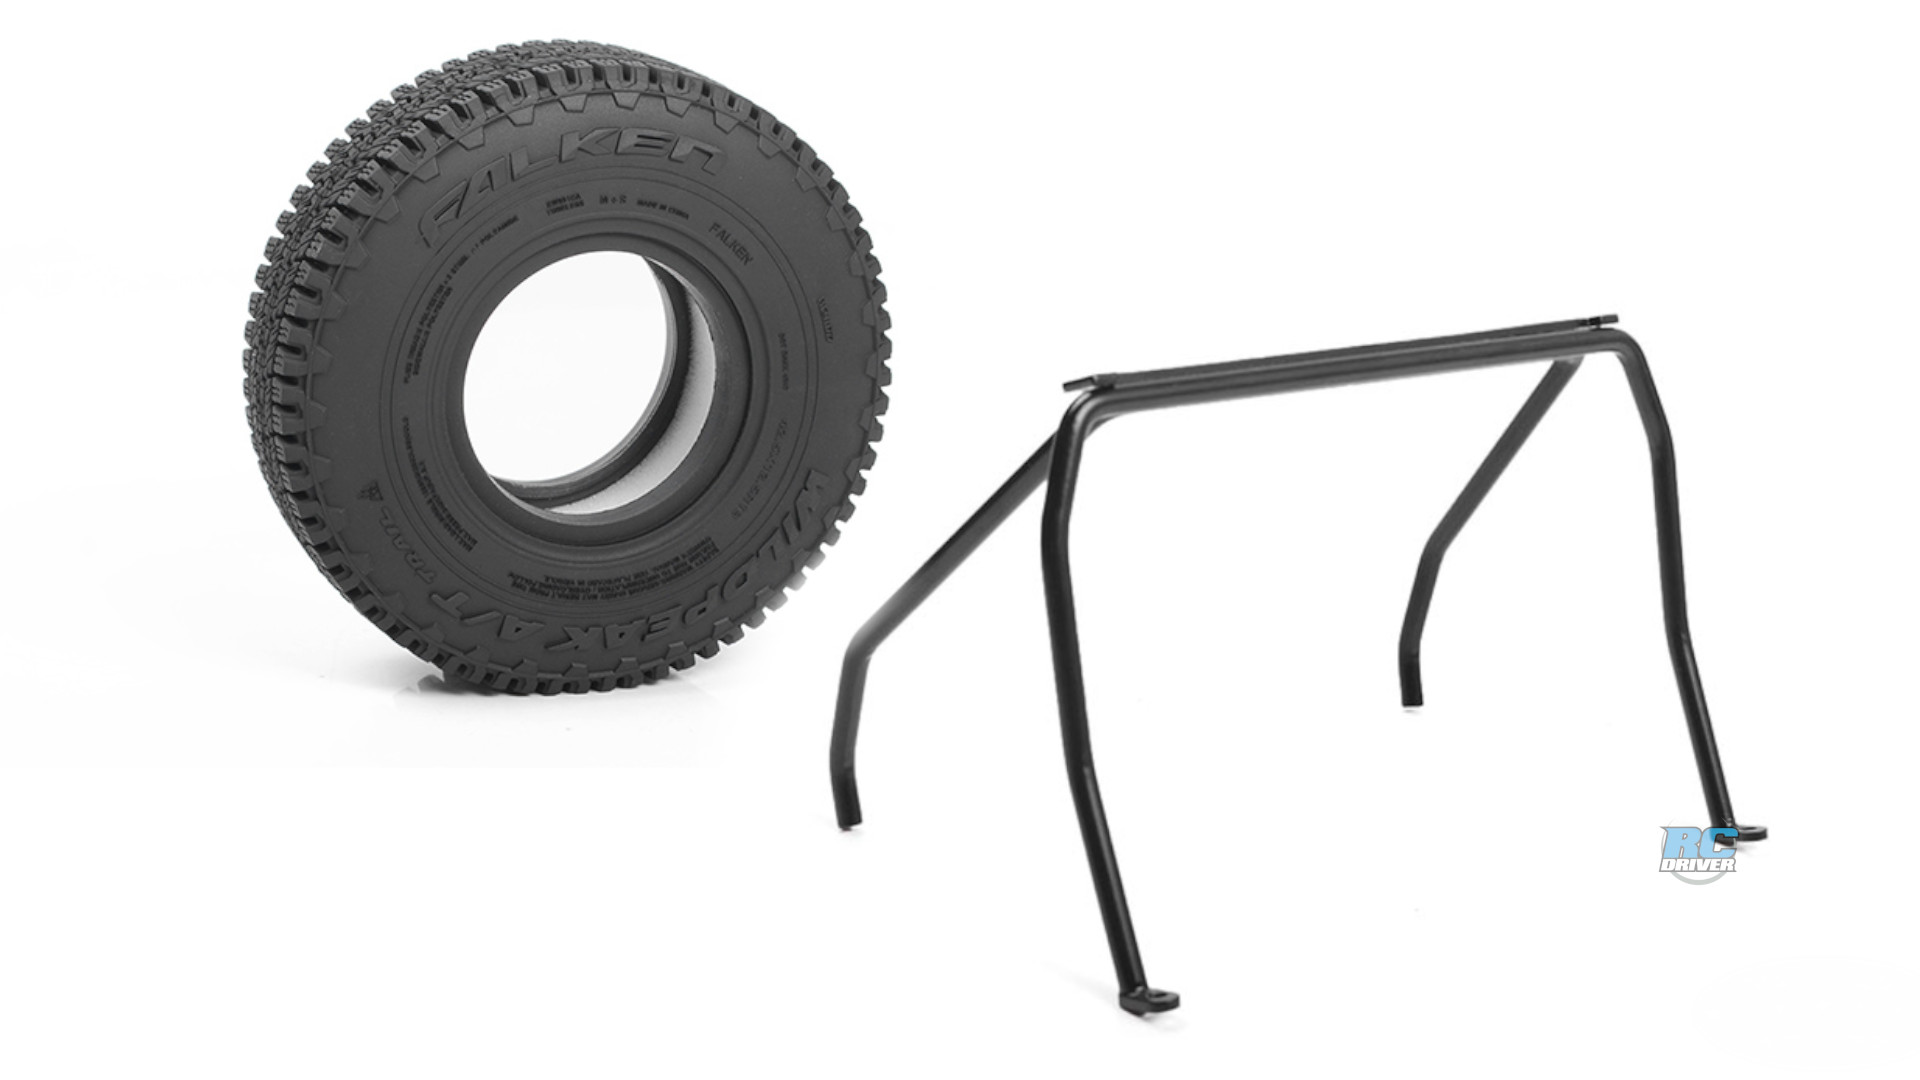 RC4WD Falken Wildpeak tires and Headache Rack